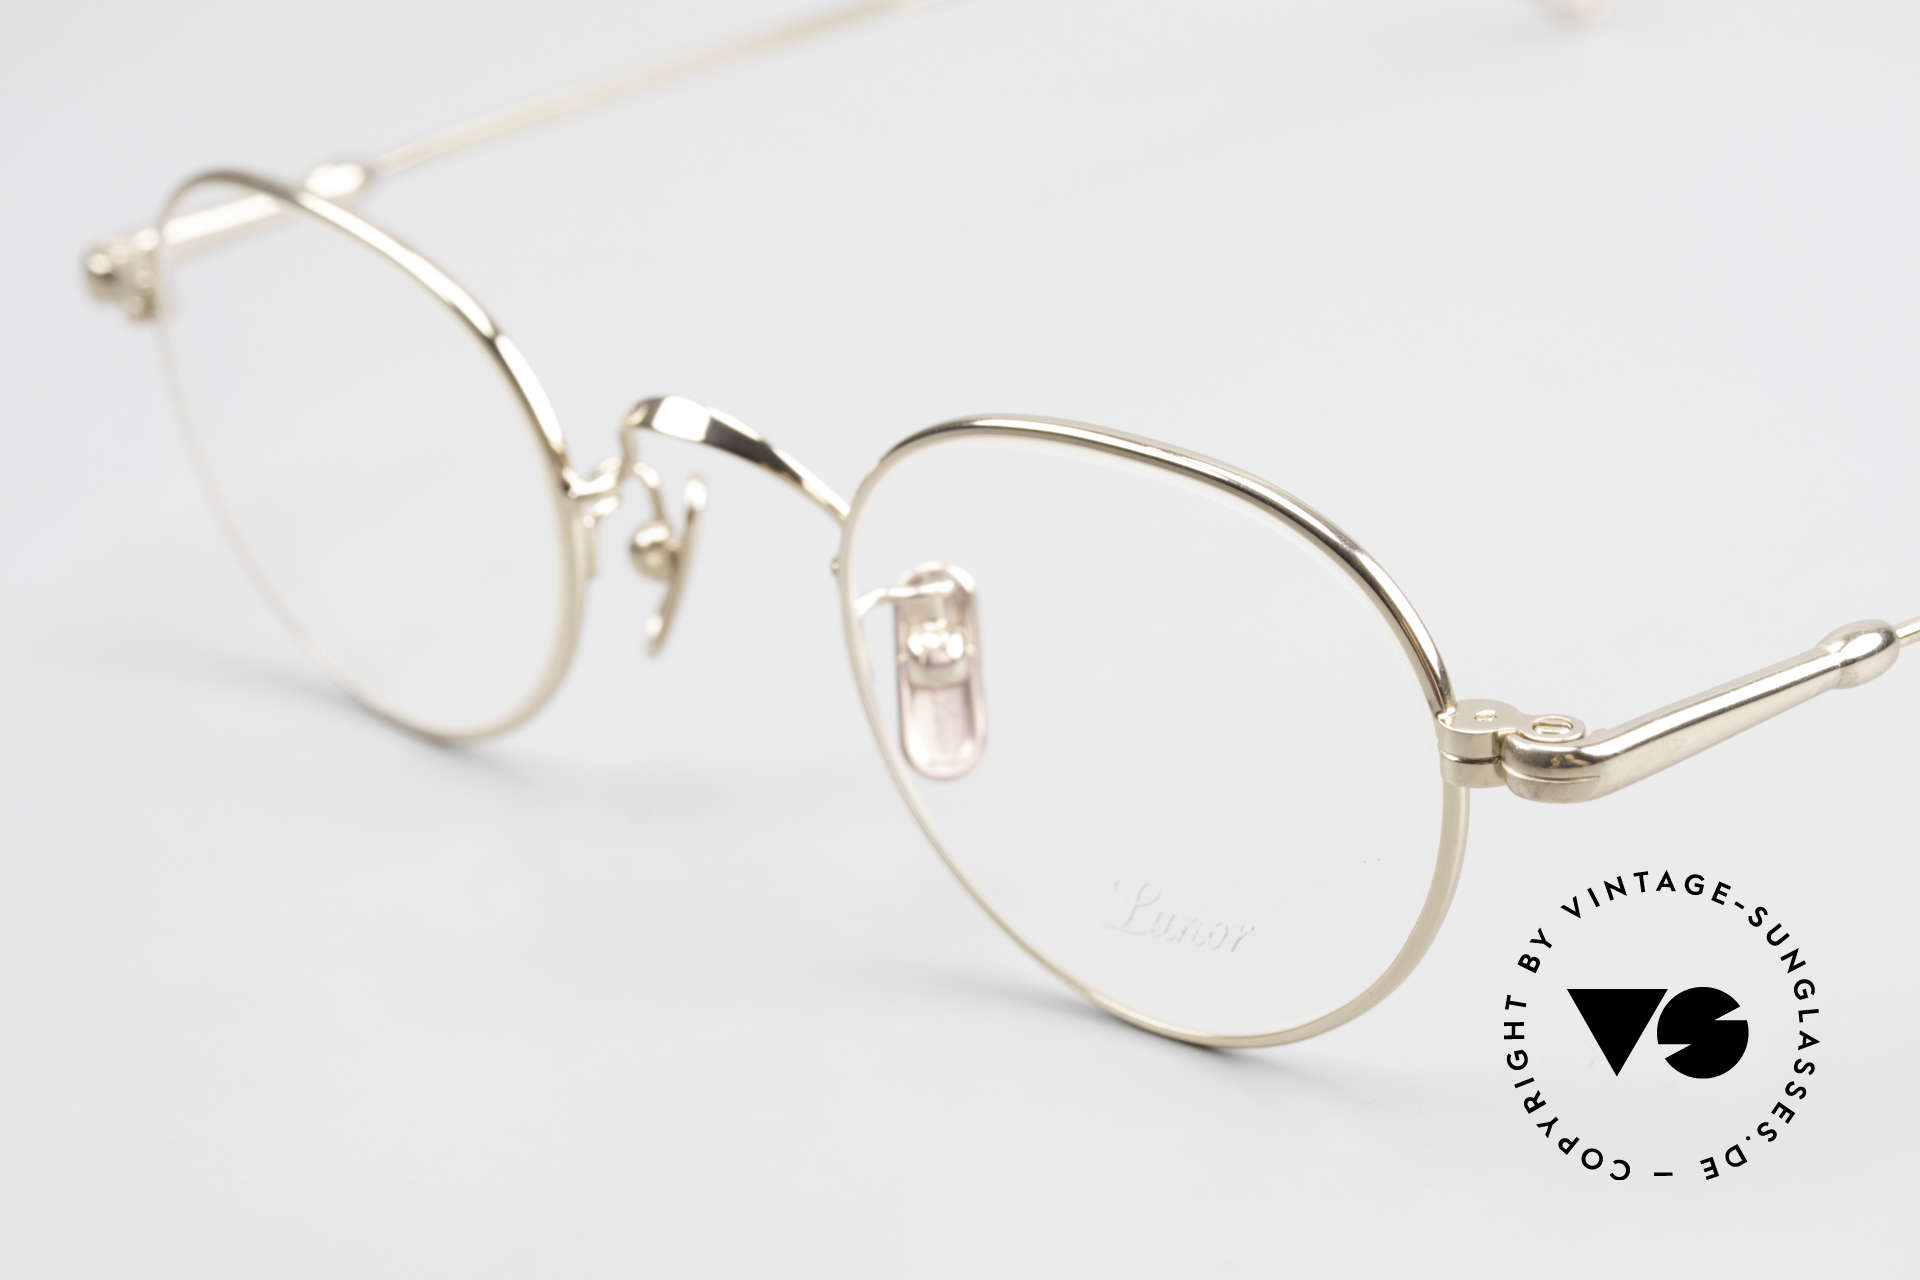 Lunor V 107 Panto Eyeglasses Gold Plated, from the 2011's collection, but in a well-known quality, Made for Men